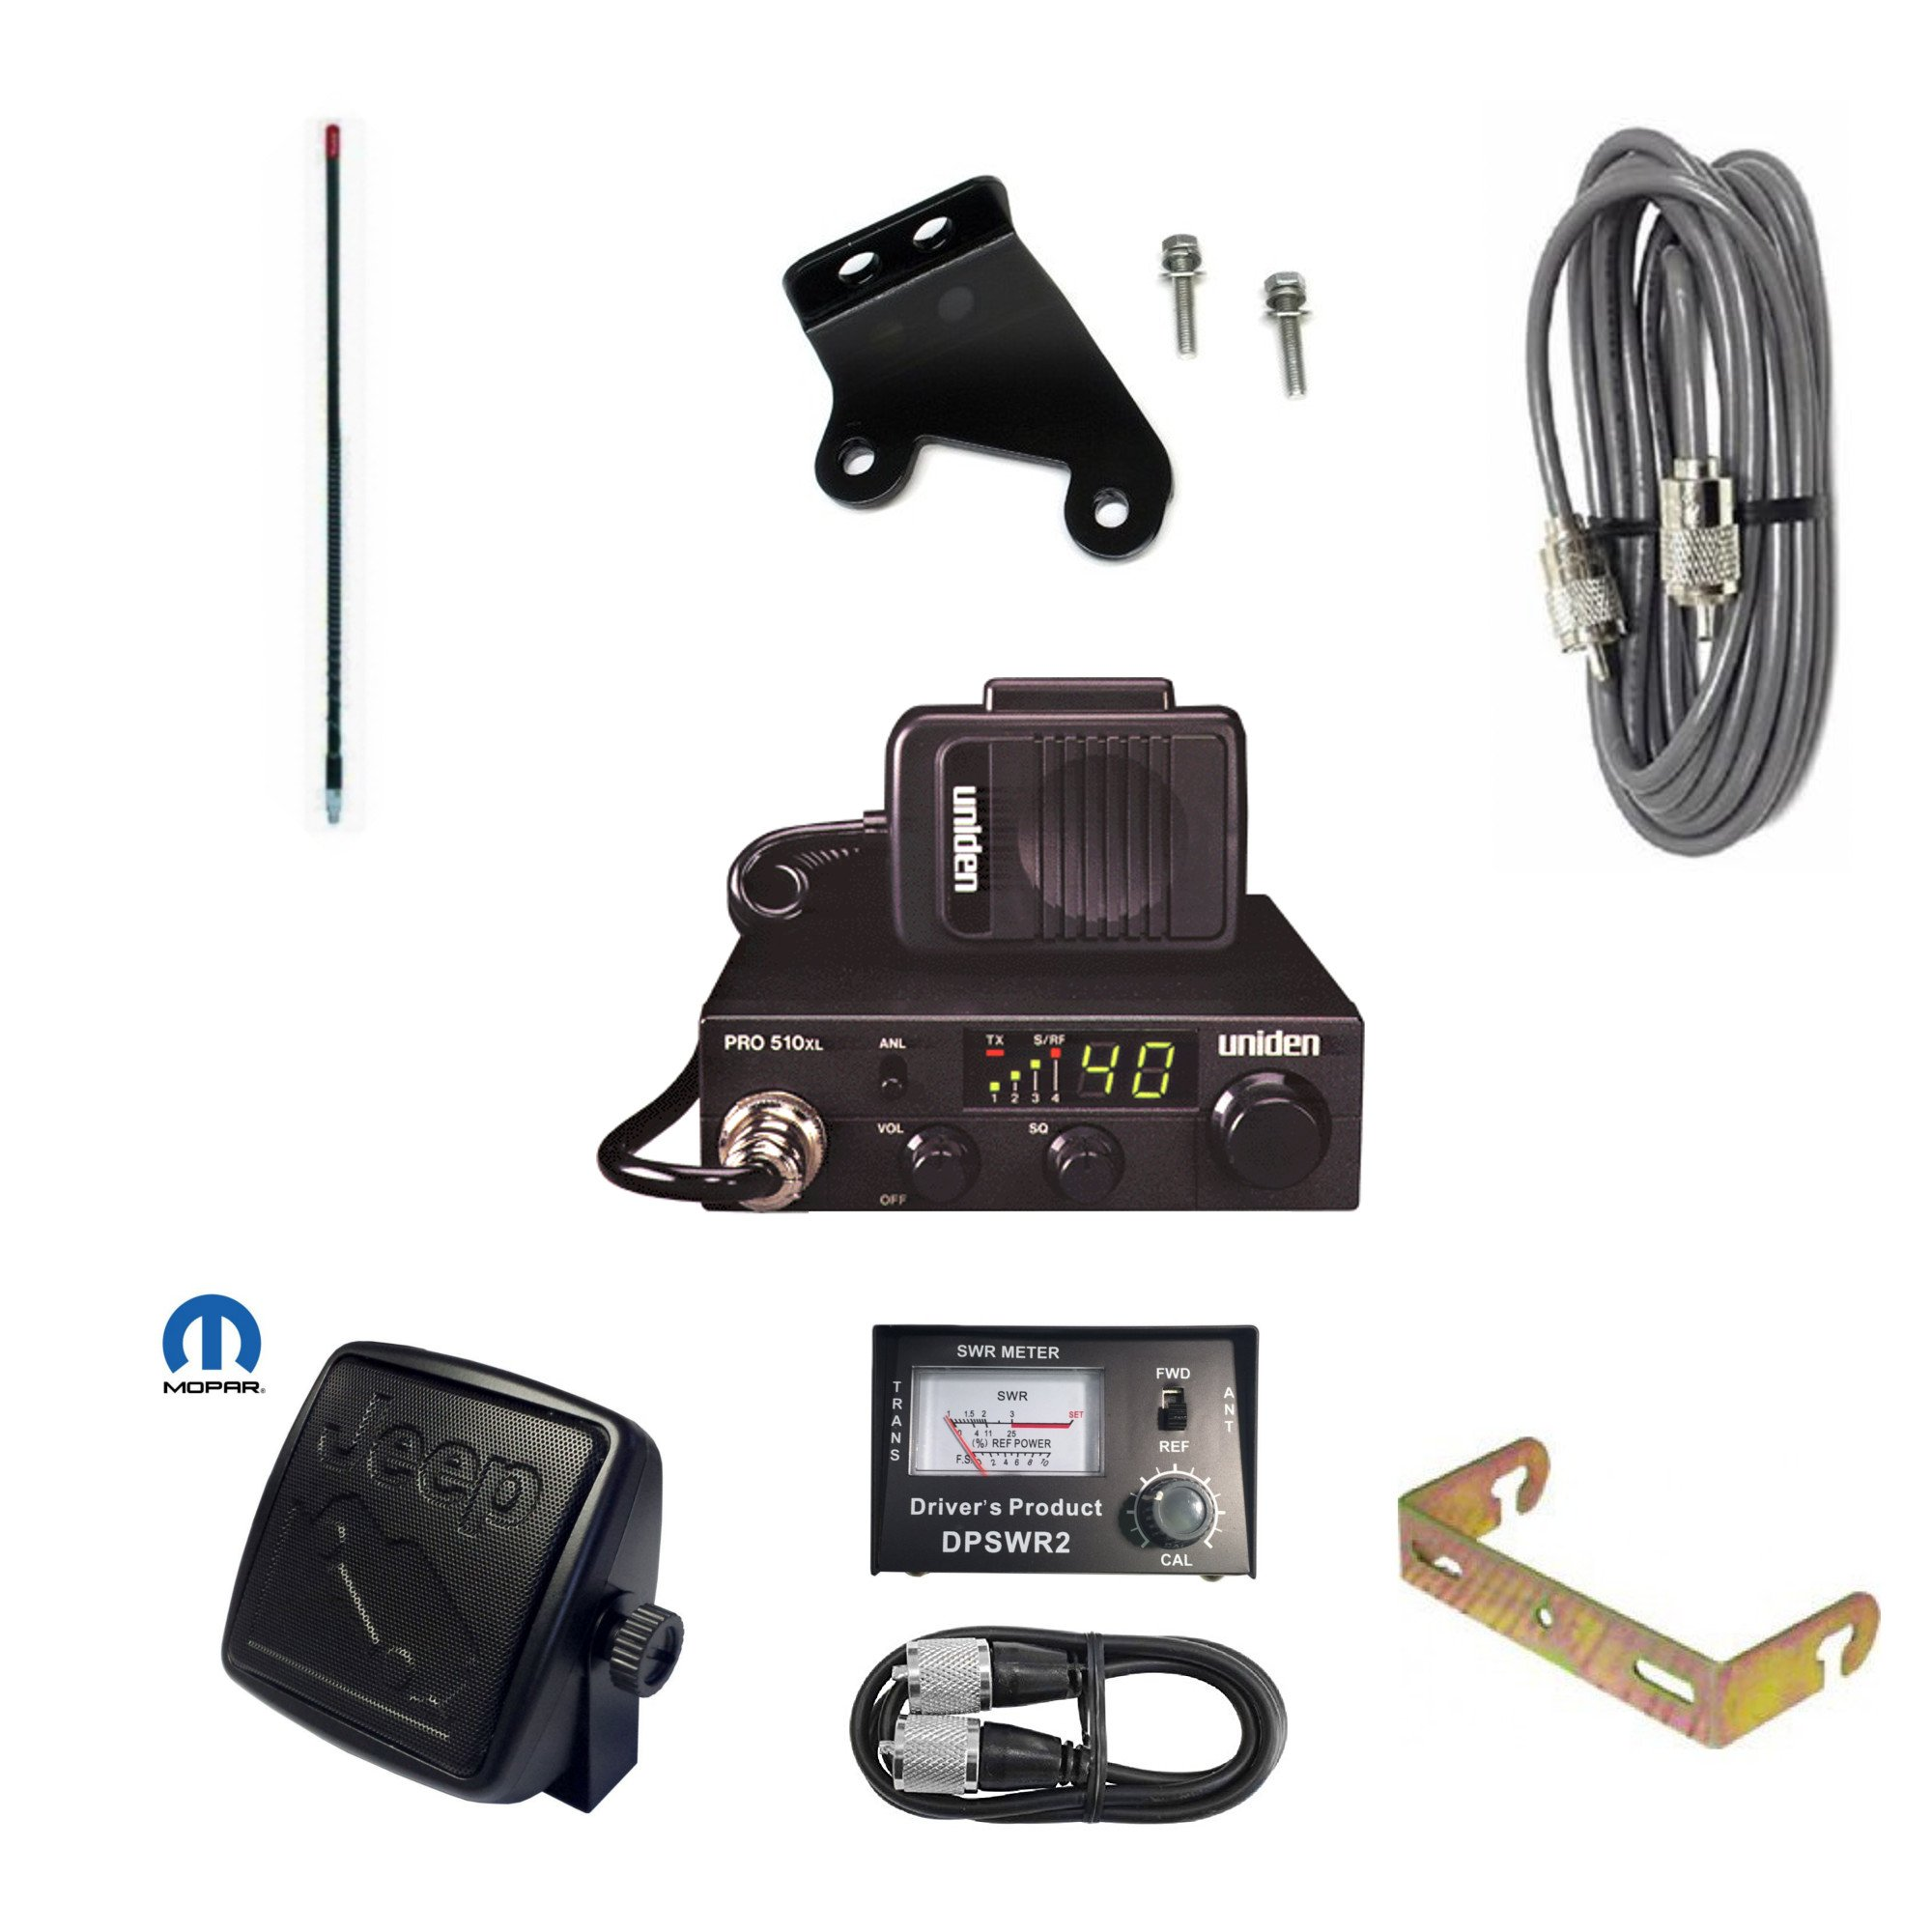 Pro Trucker JK Jeep CB Radio Kit With CB Radio, Firestik Antenna, Radio Mount, Antenna Mount, Stud, Coax, SWR Meter With Jumper Cable, And Mopar Jeep Speaker - Black by Pro Trucker